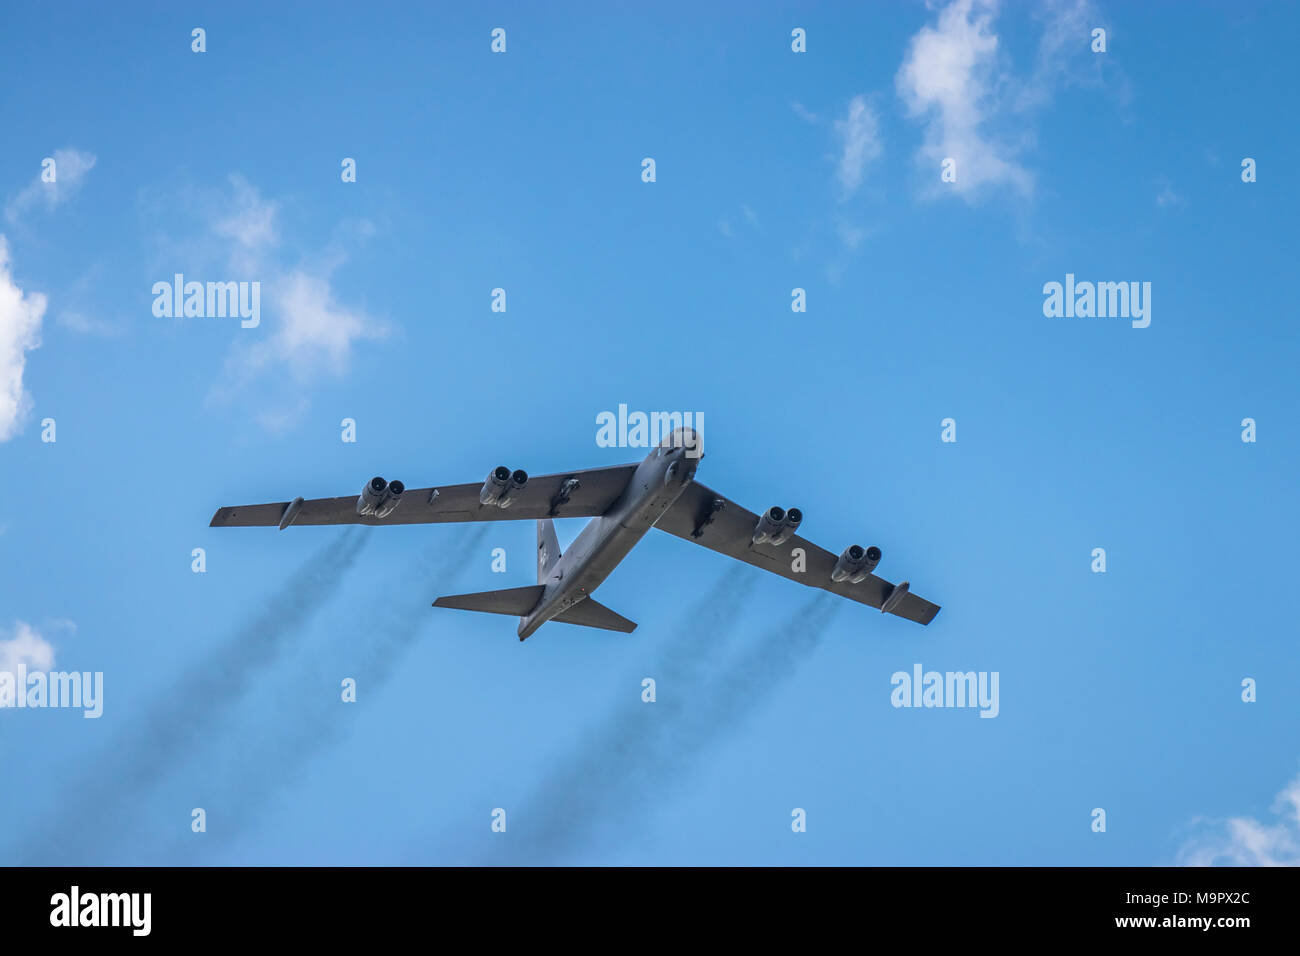 The Mighty Buff Boeing B-52 Stratofortress bomber in flight at the 2017 Airshow in Duluth, Minnesota, USA. - Stock Image